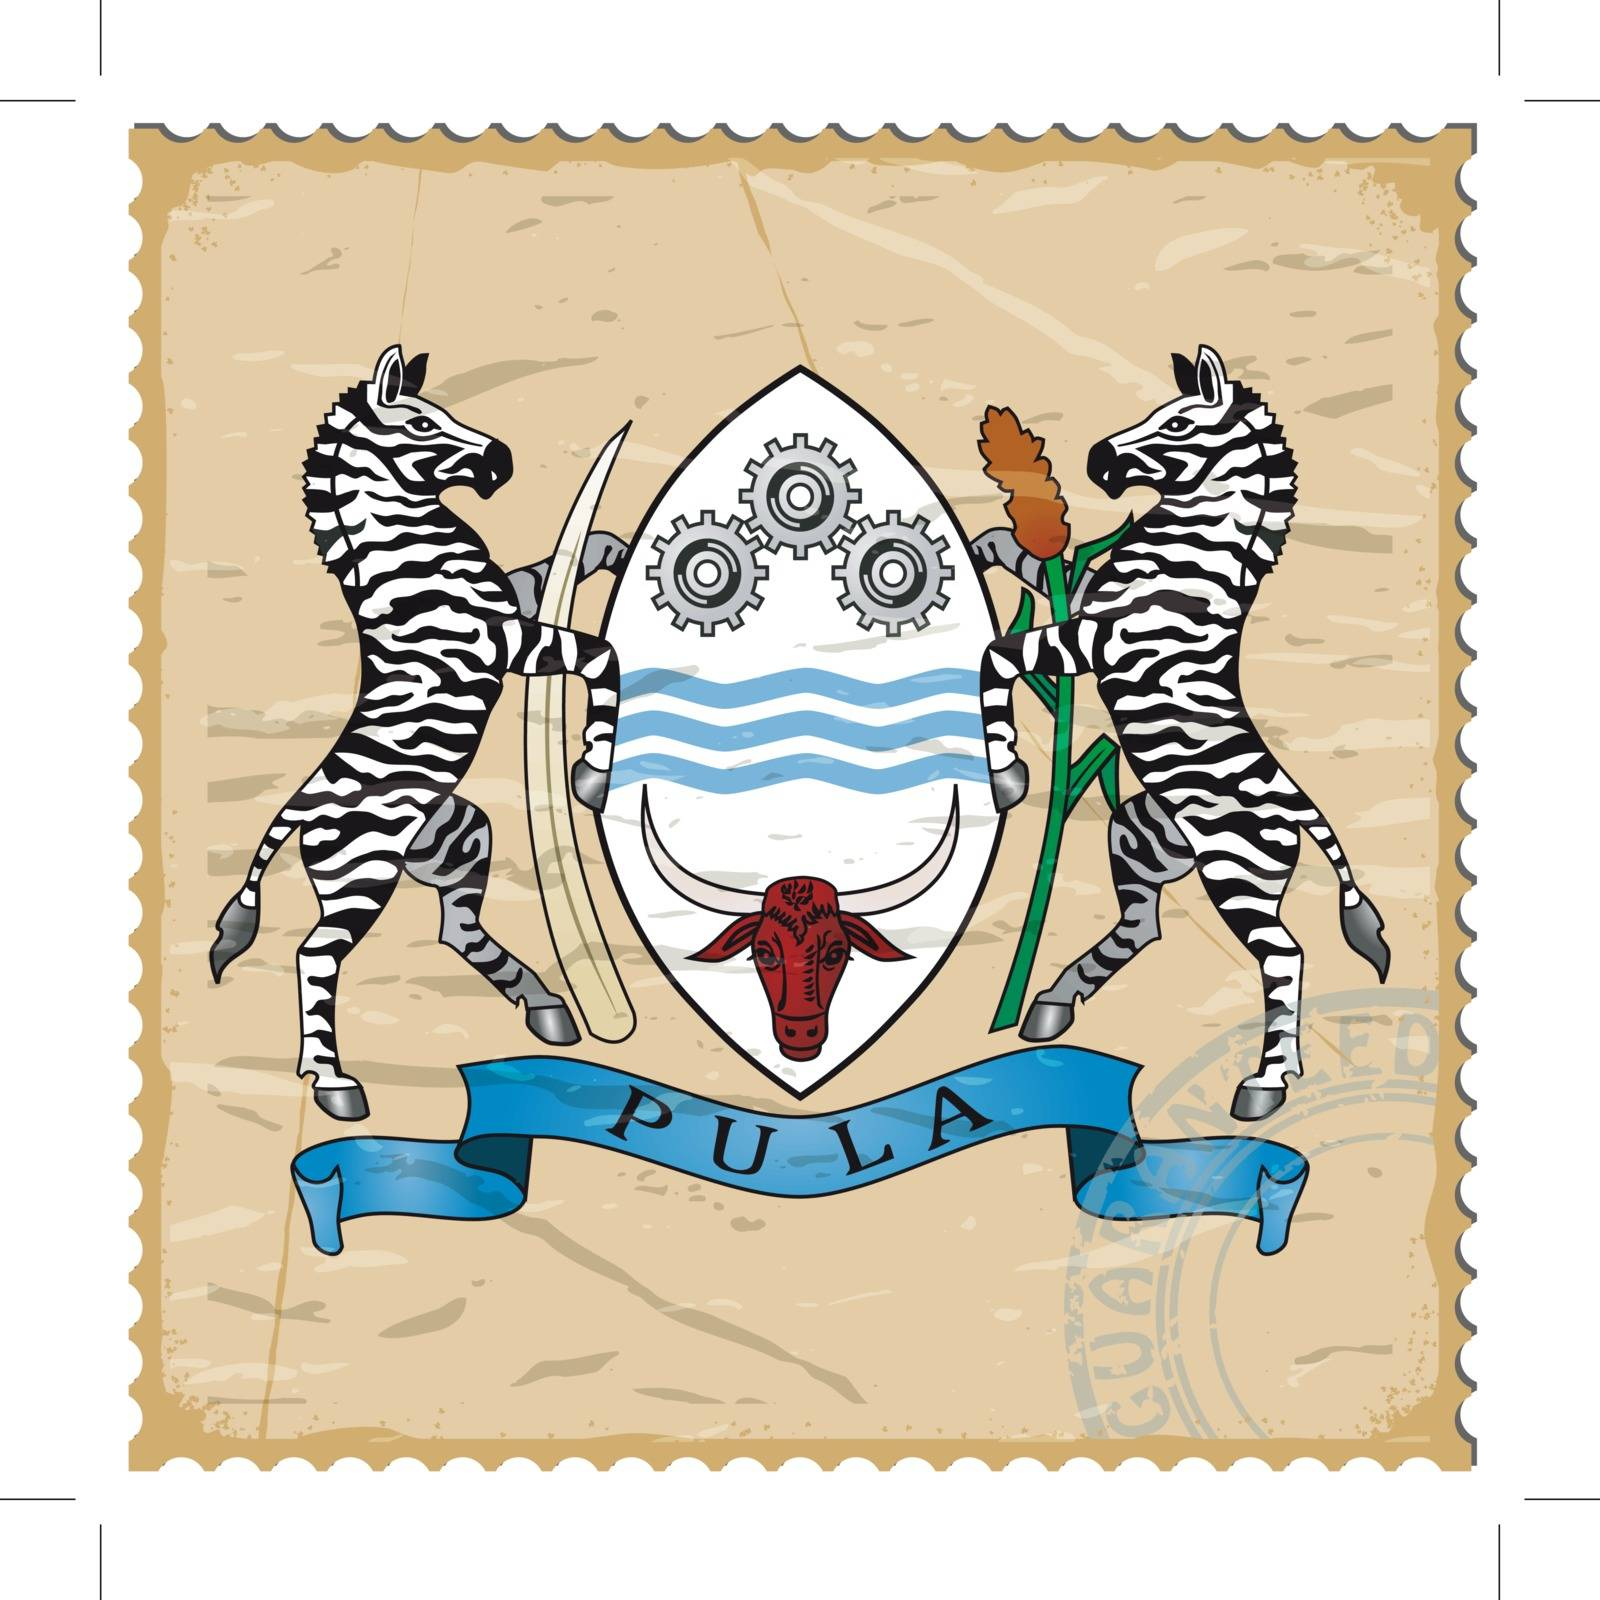 Coat of arms of  Botswana on the old postage stamp